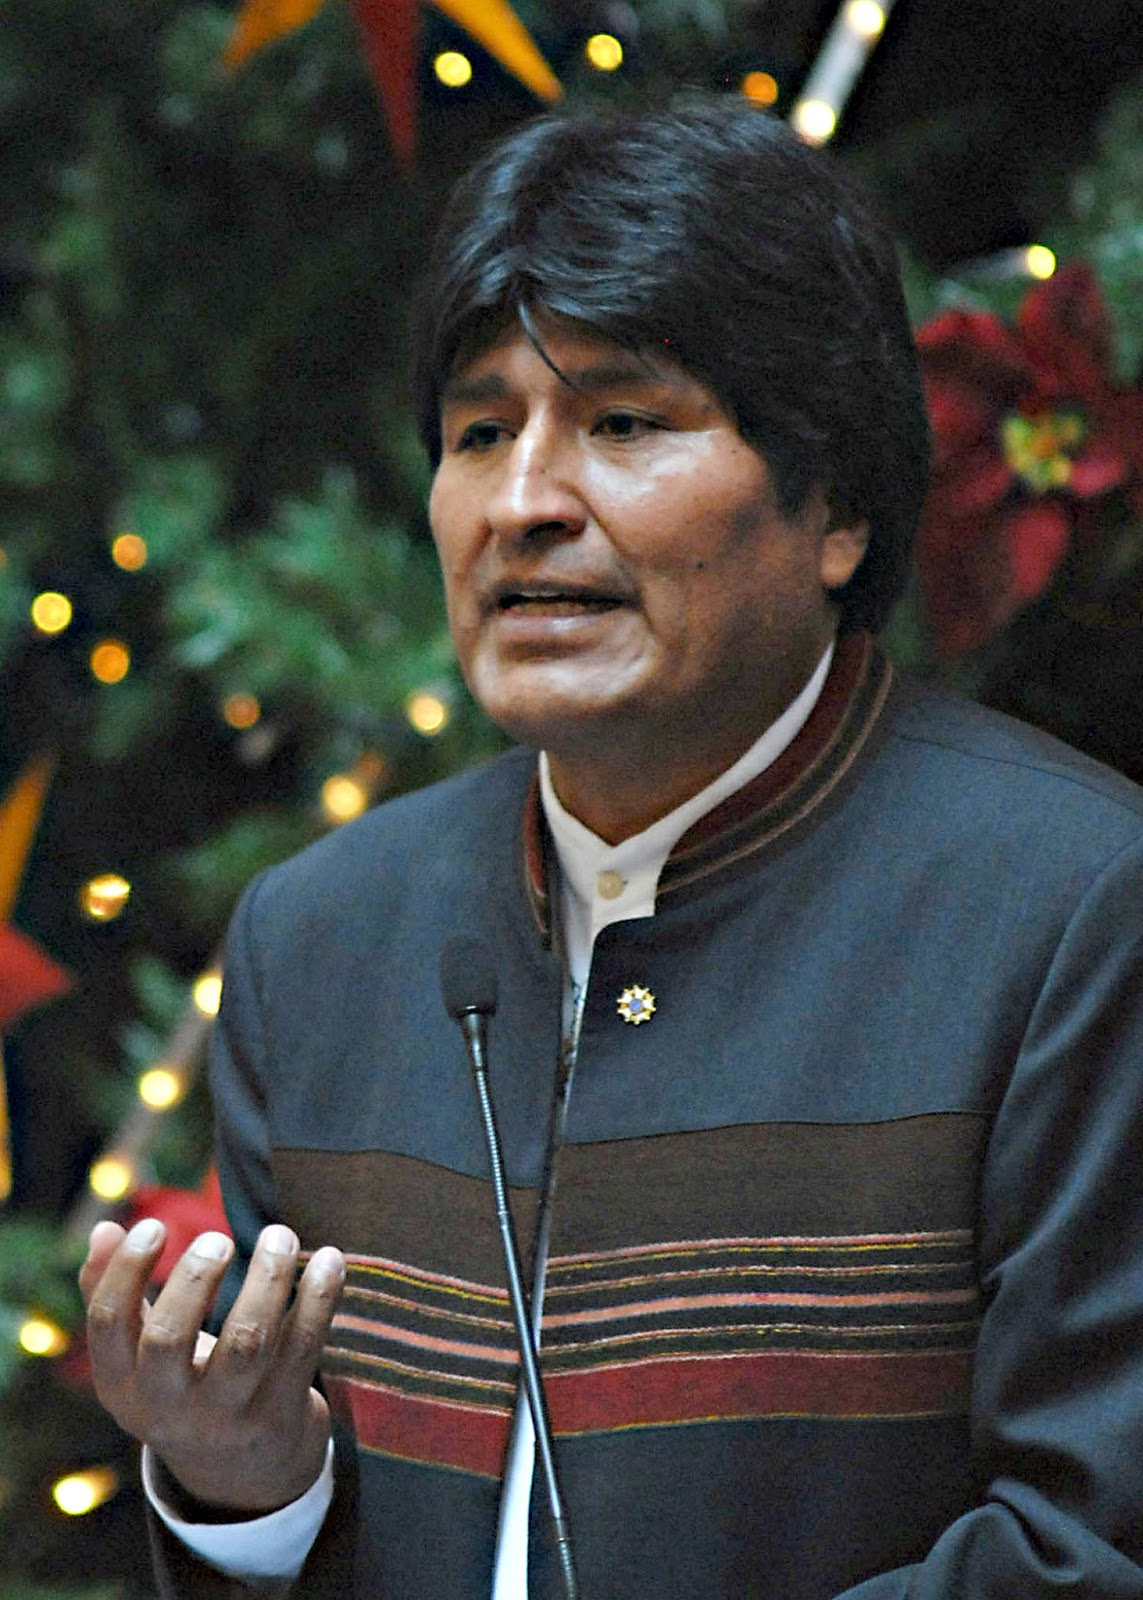 Famous People: Famous People From Bolivia